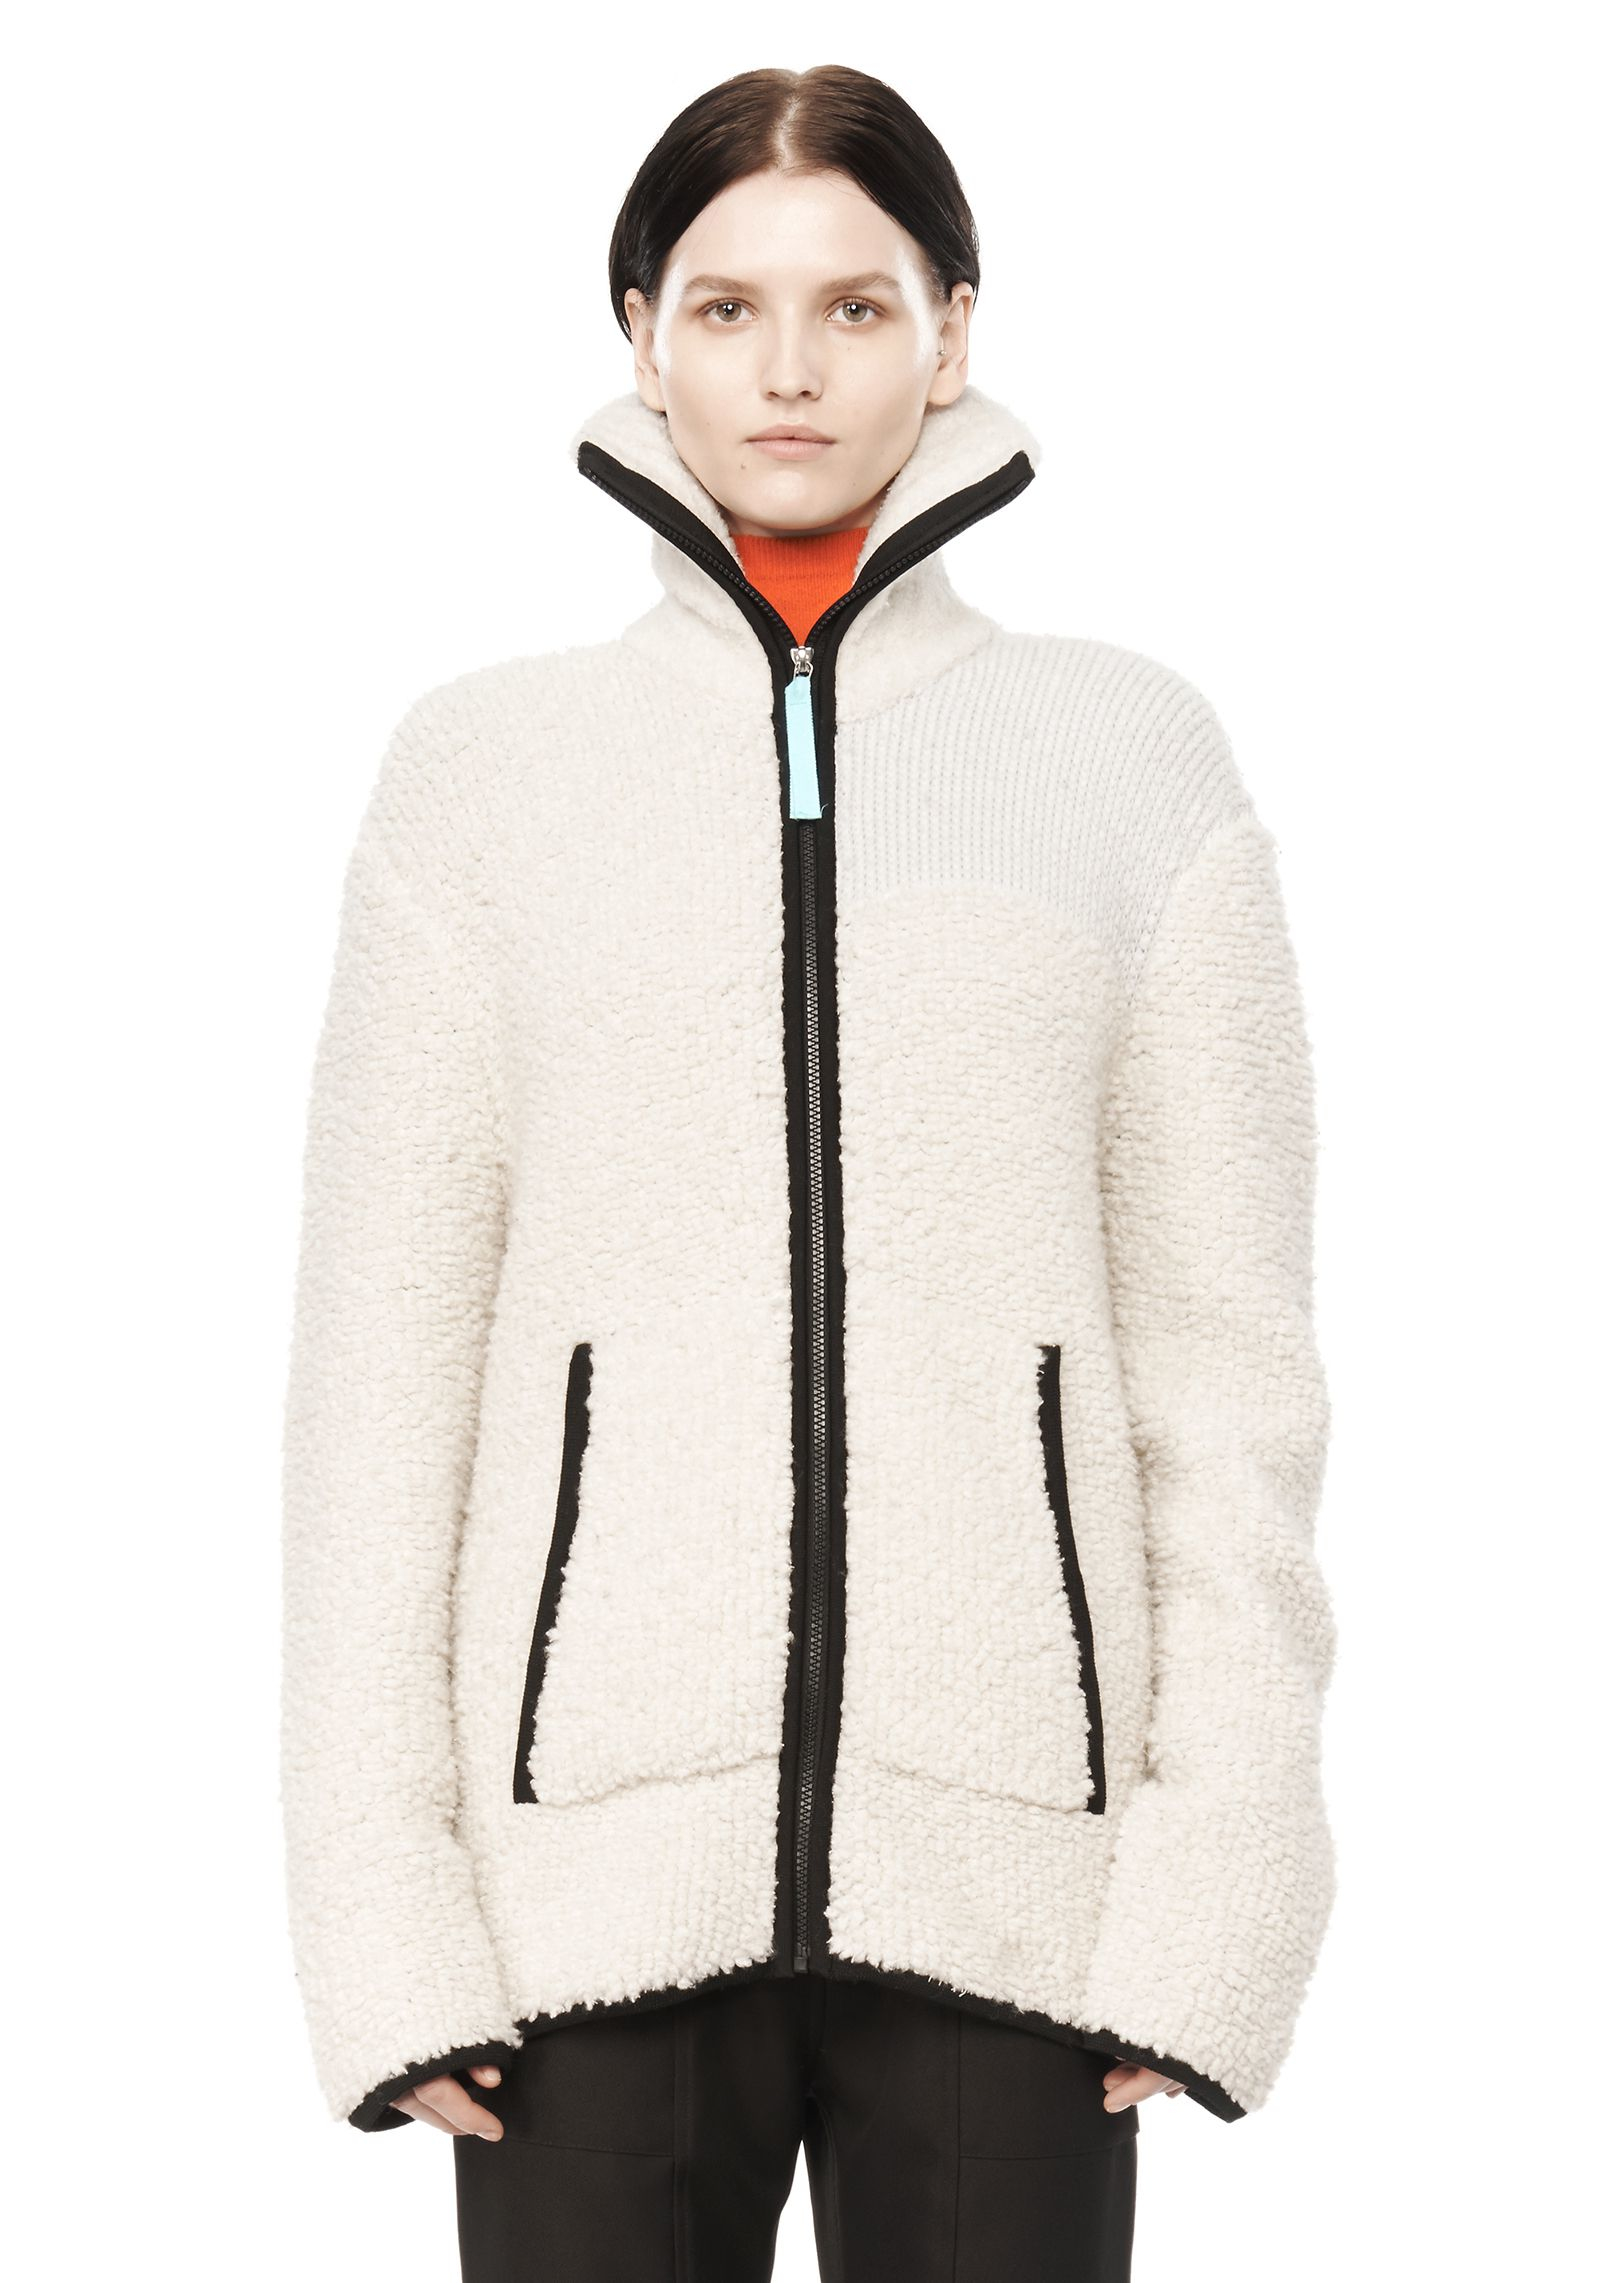 T by alexander wang Chunky Fleece Zip Up Jacket in White | Lyst